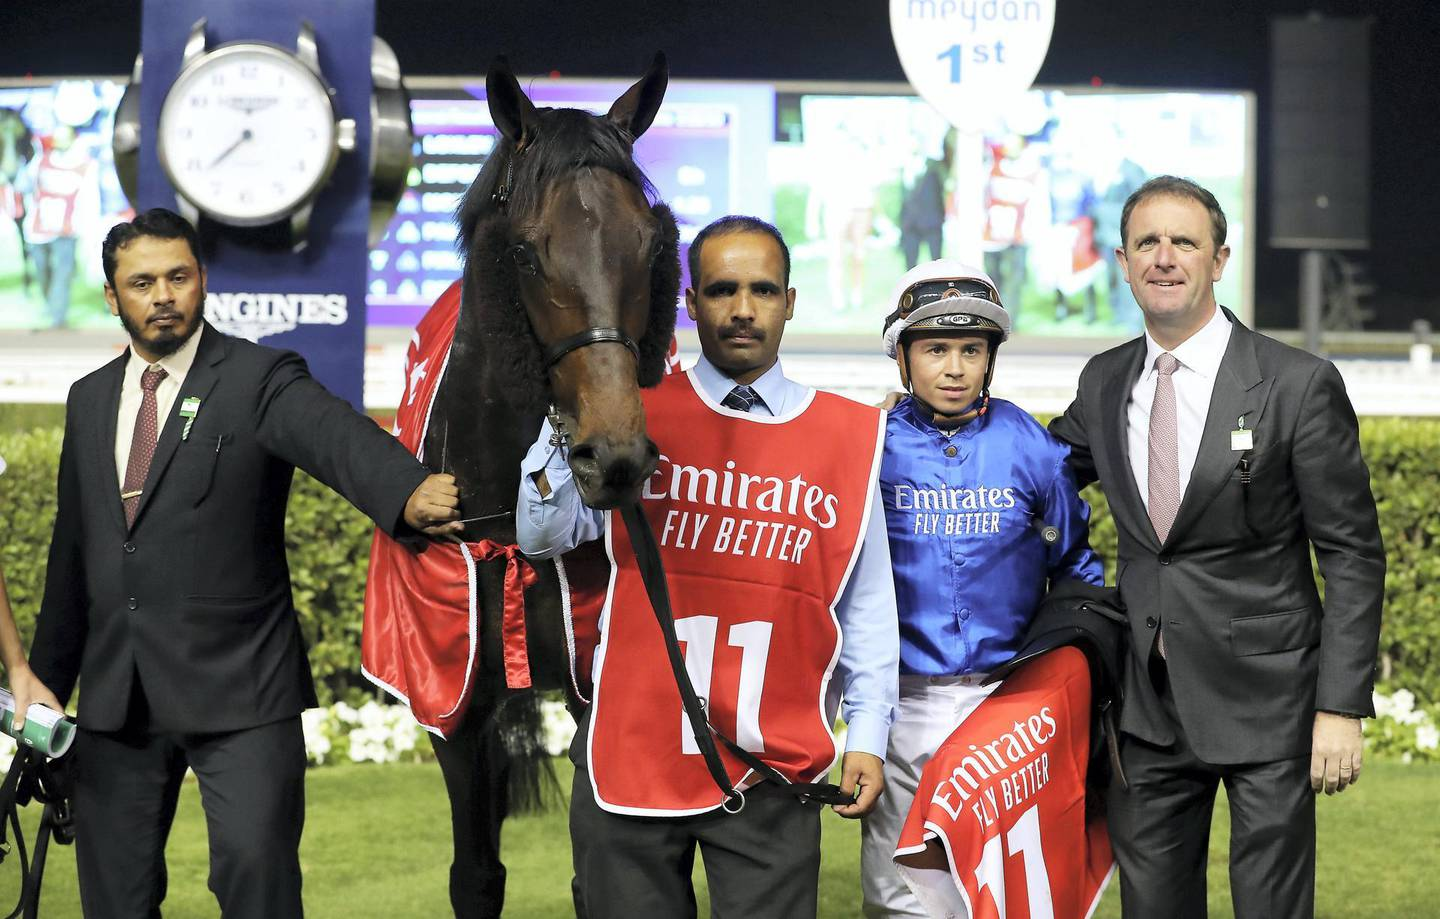 DUBAI , UNITED ARAB EMIRATES , Mar 7 – 2020 :- Mickael Barzalona  (no 11) guides Loxley  (IRE)  to win the 7th horse race Dubai City of Gold, 2410m Turf during the Super Saturday meeting at the Meydan Racecourse in Dubai. Super Saturday is the dress rehearsal for the Dubai World Cup. ( Pawan Singh / The National ) For Sports. Story by Amith